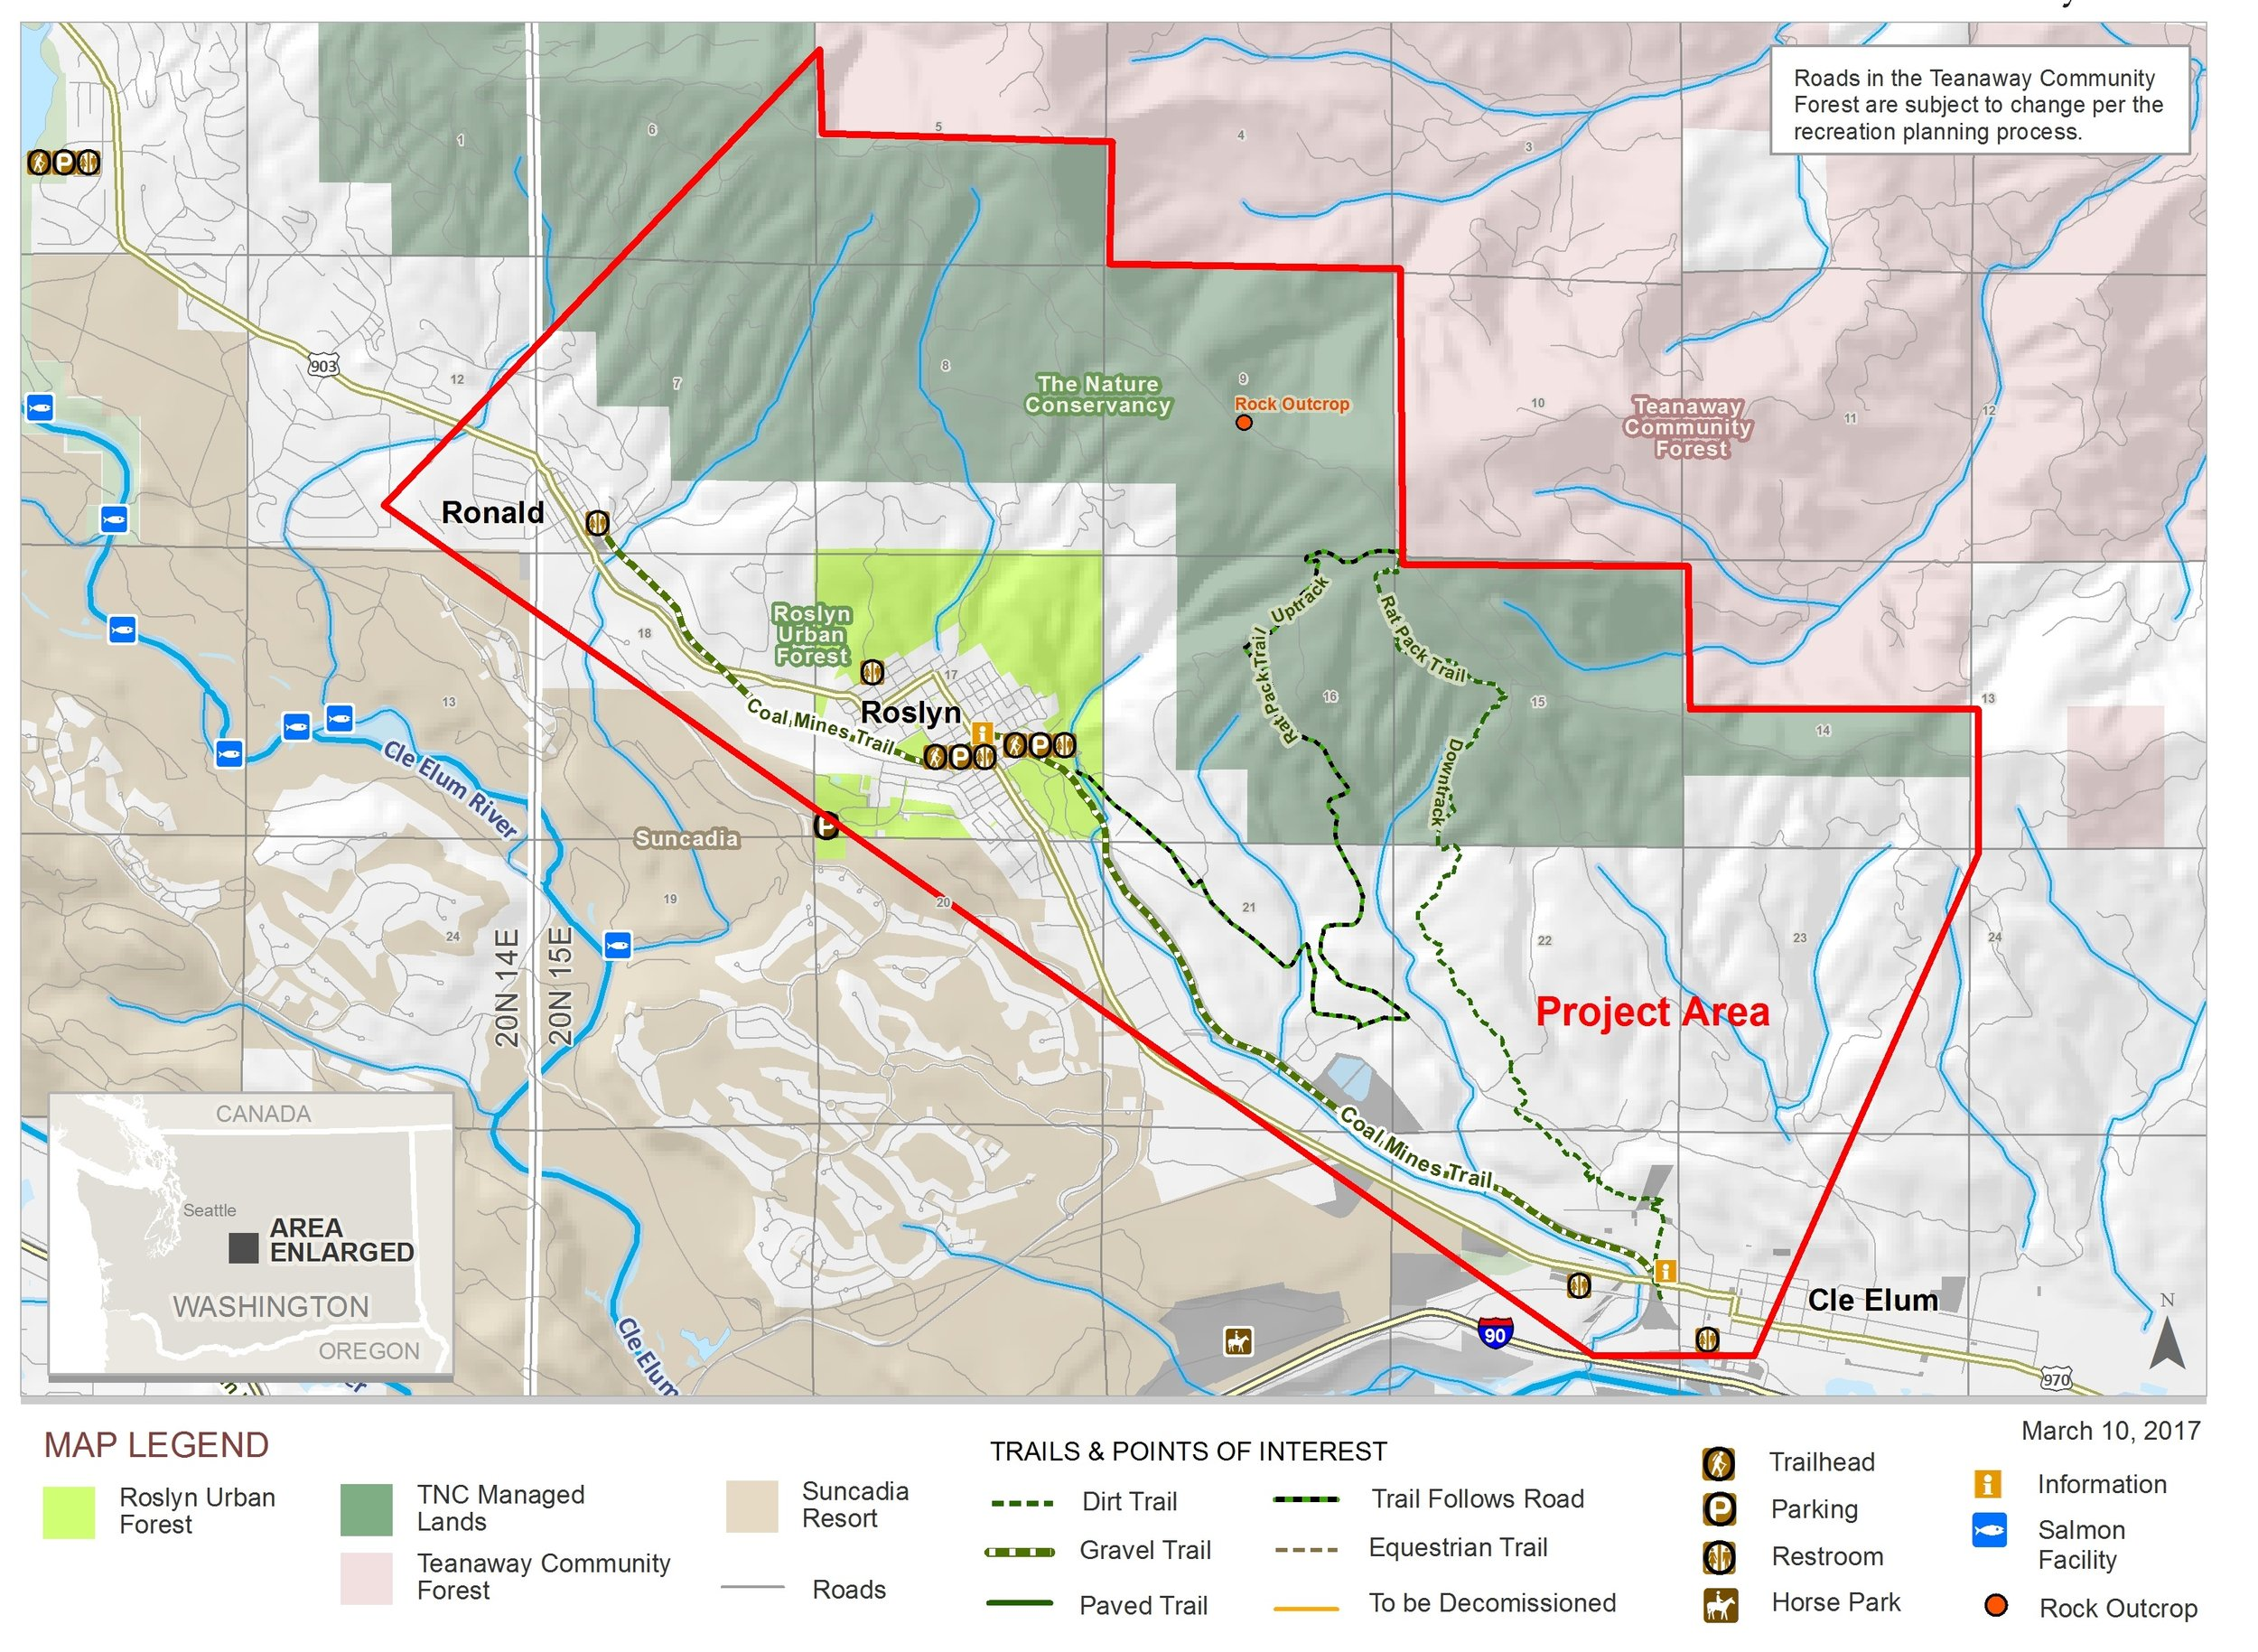 Outline of the planning area for the Towns to Teanaway corridor, with current trail systems defined.